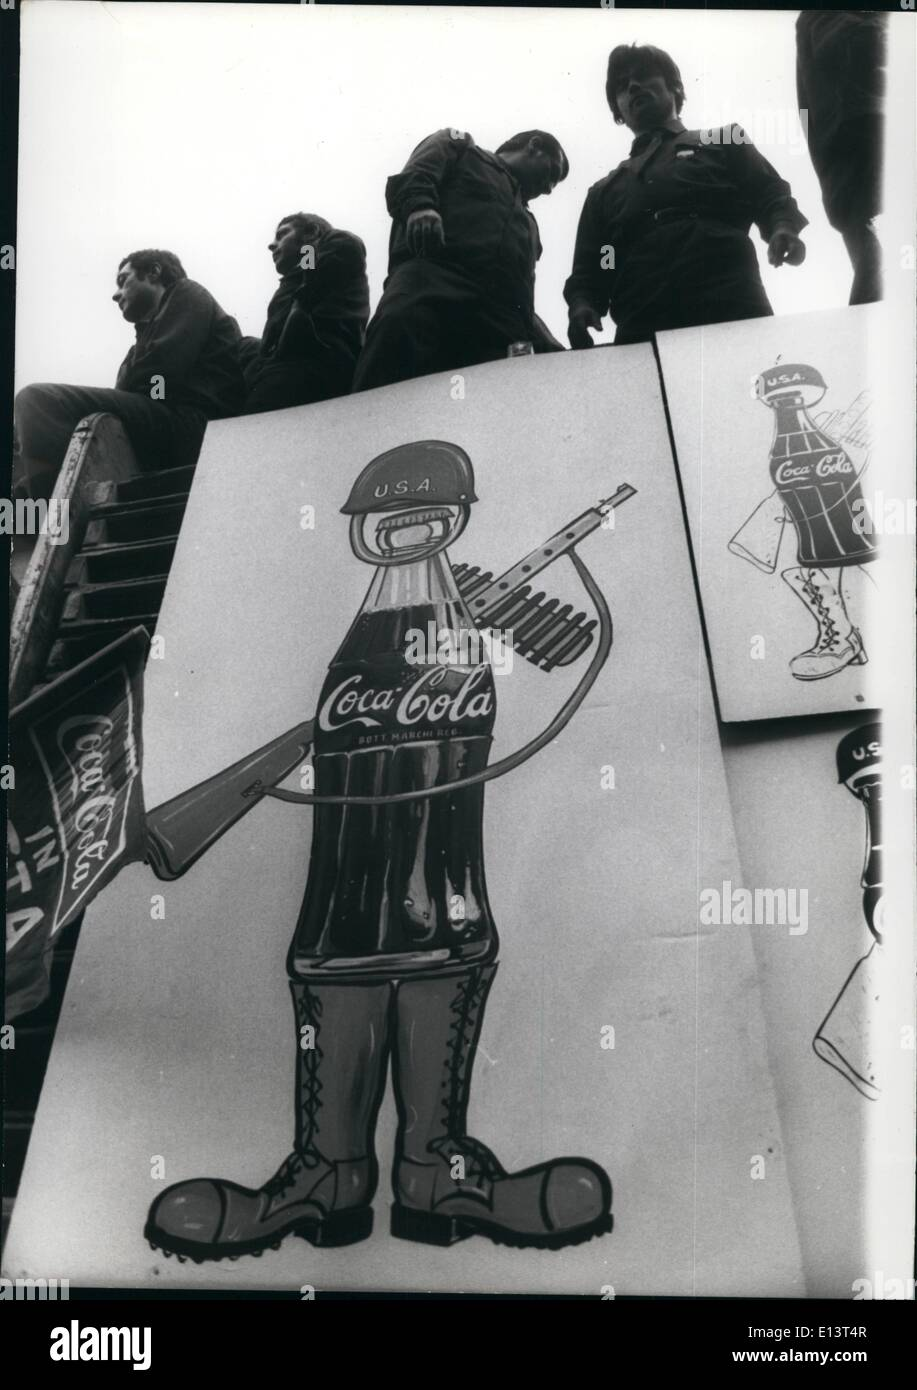 Mar. 27, 2012 - After the announced liquidation the employees occupied the factory of the Coca Cola company in Rome, to protest - Stock Image